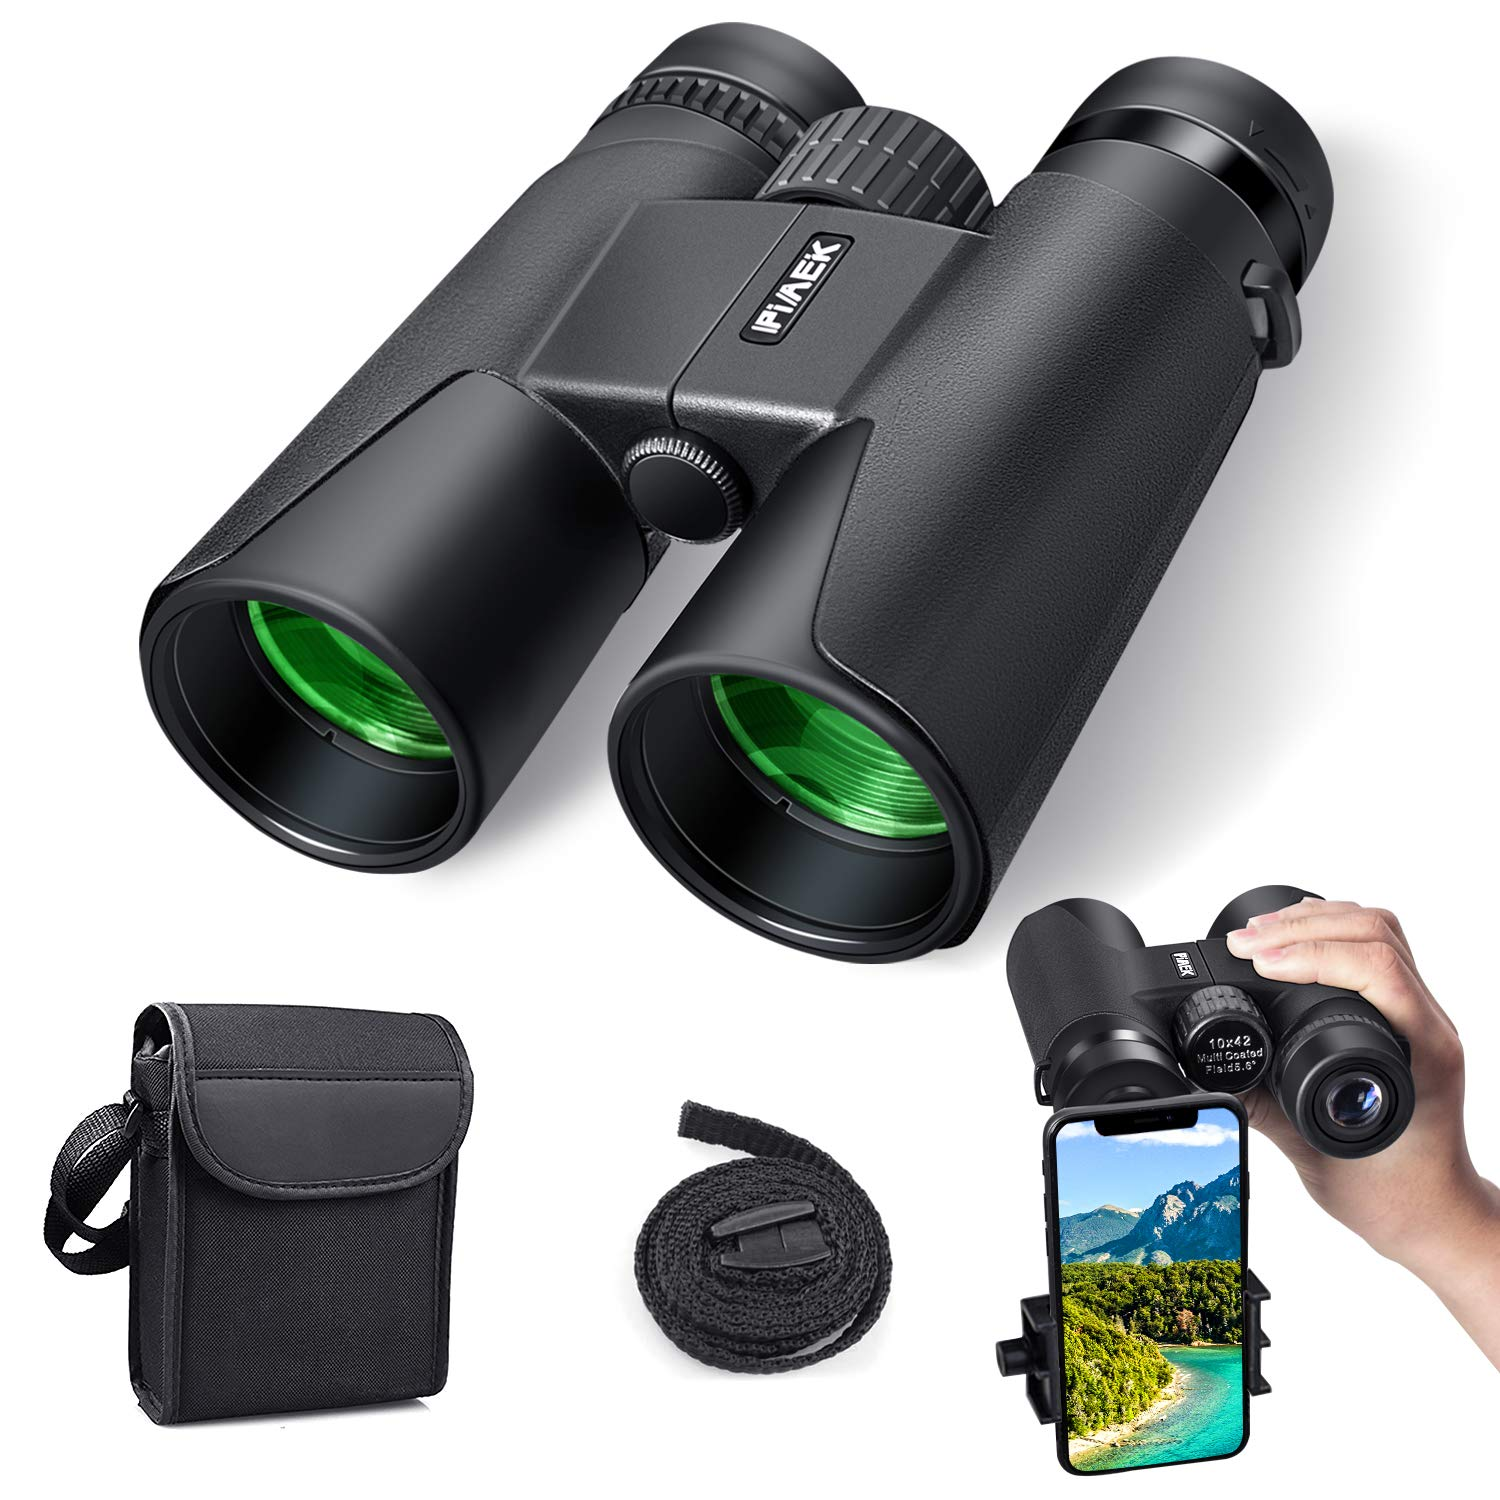 Binoculars for Adults, 10×42 Compact HD Professional Binoculars with Smart Phone Mount for Bird Watching, Camping, Hiking-BAK4 Prism FMC Lens with Neck Strap Carrying Bag